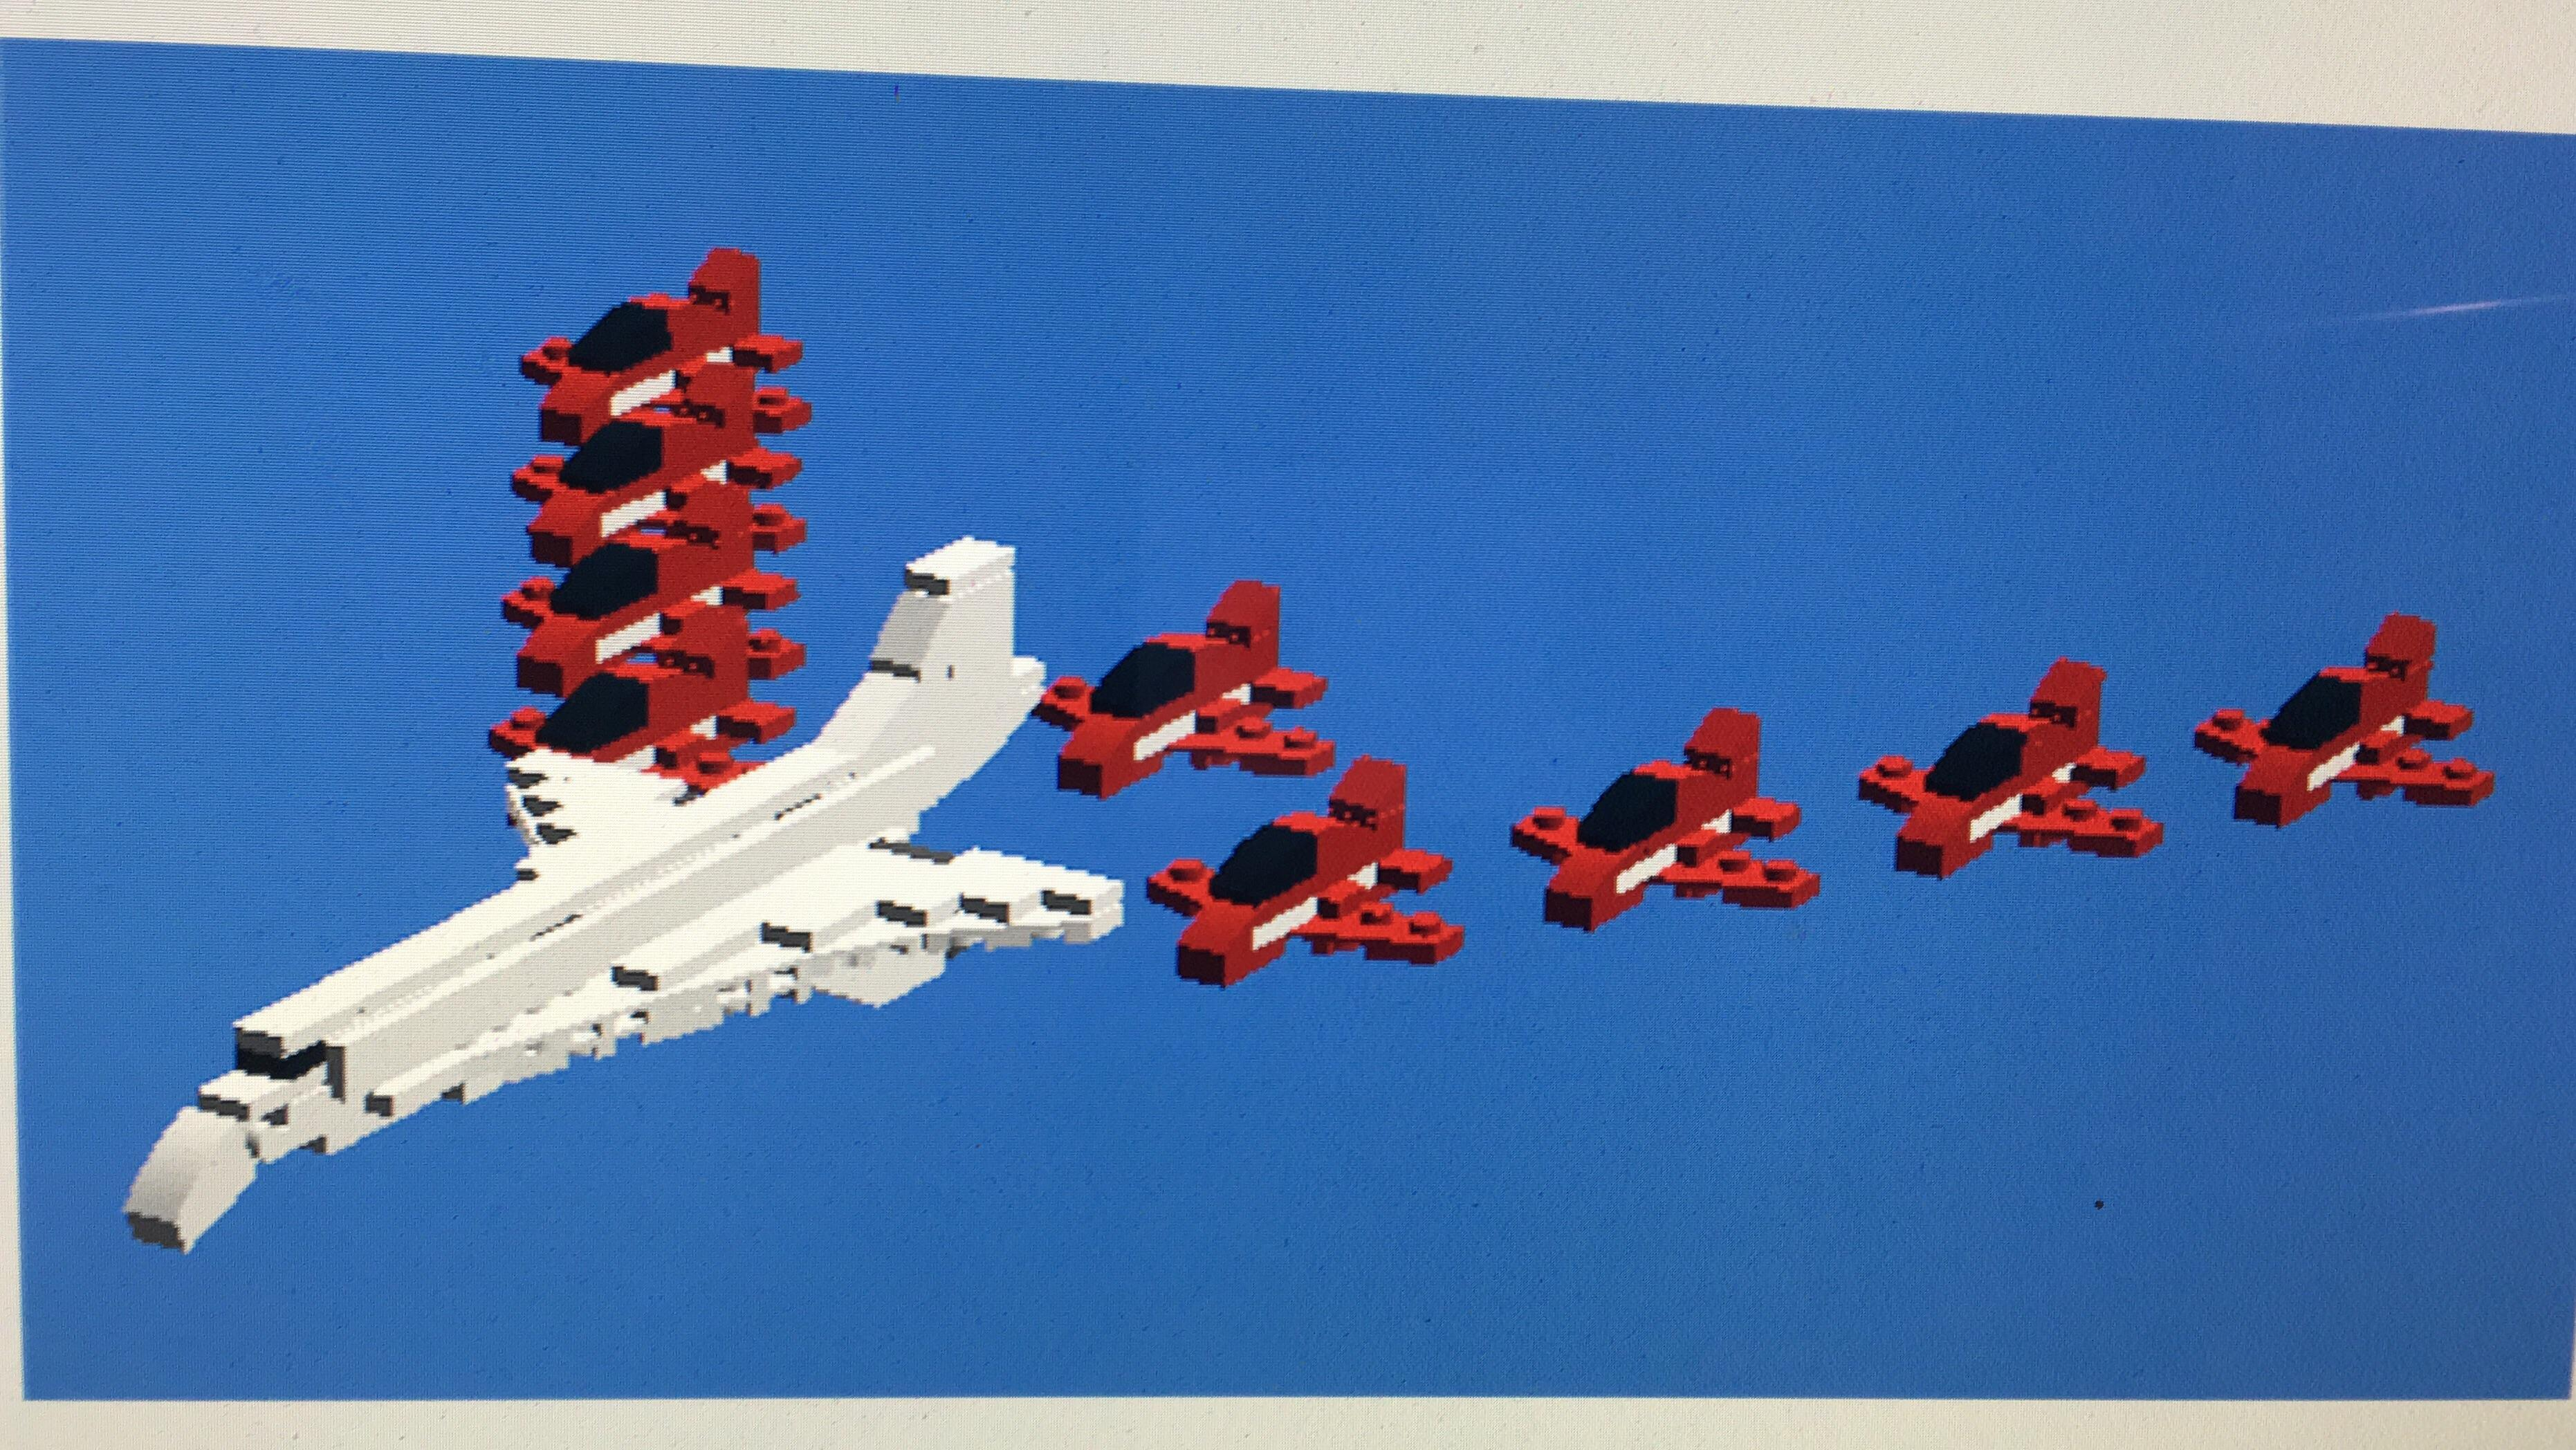 miniature red arrows and